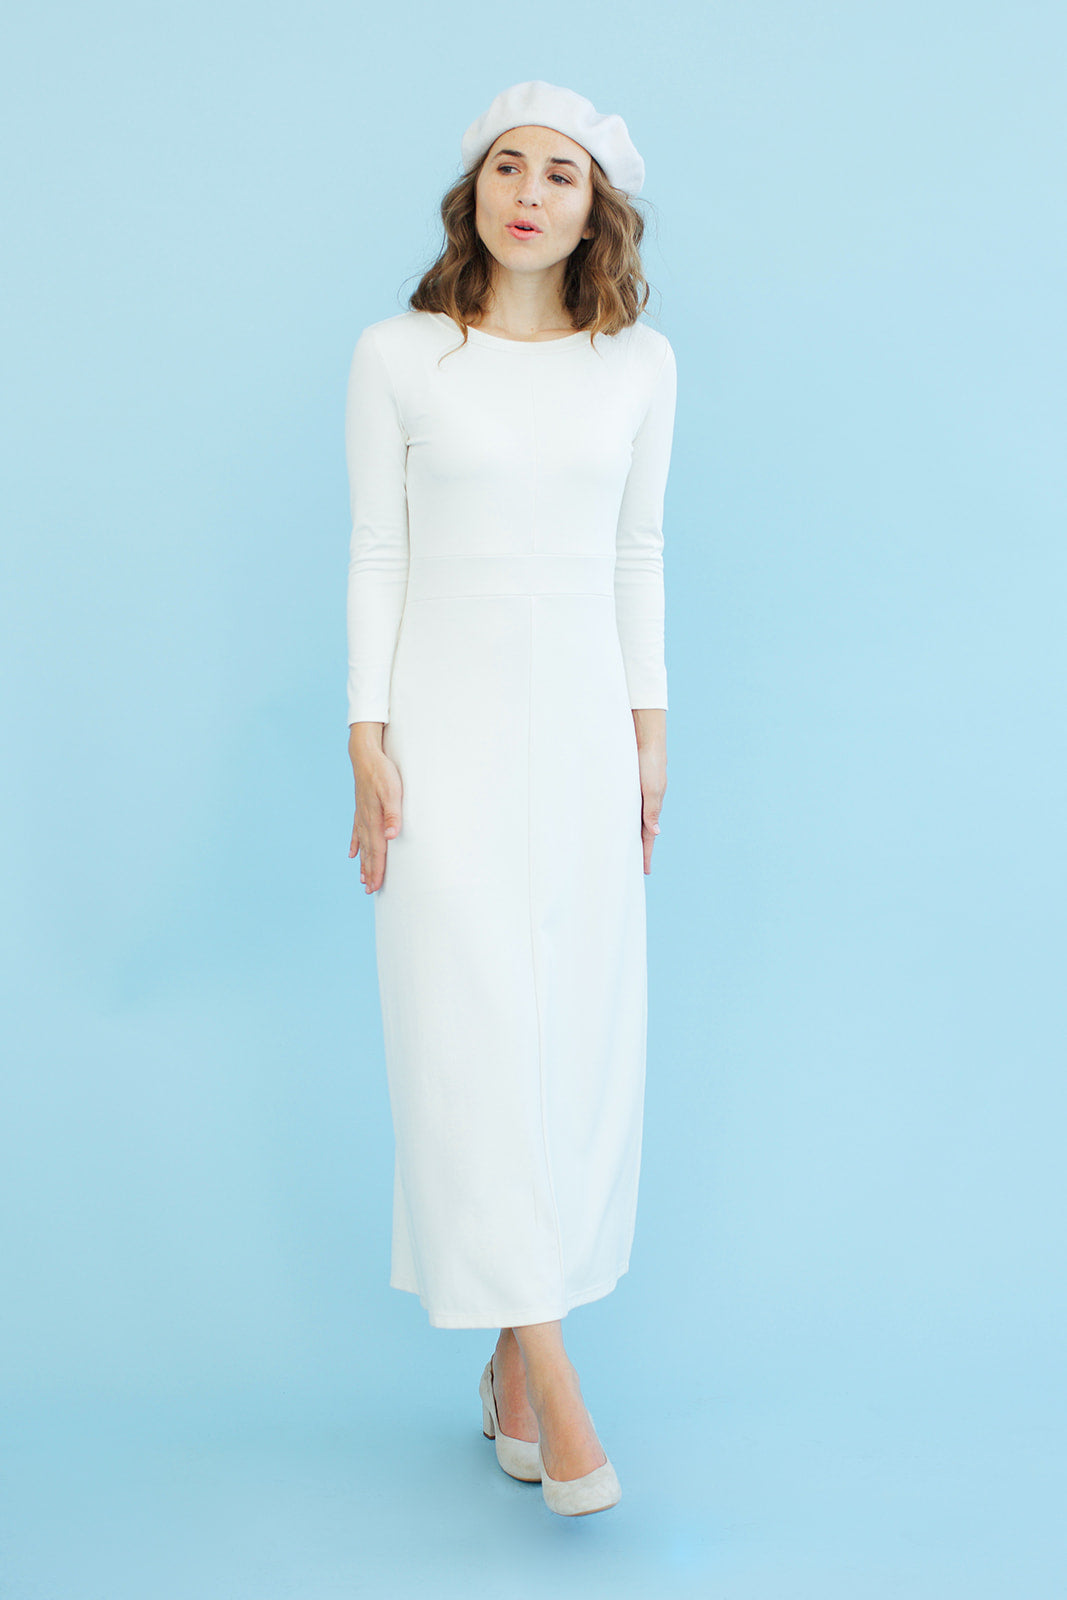 Sonnet James - HANNAH - Dress,White